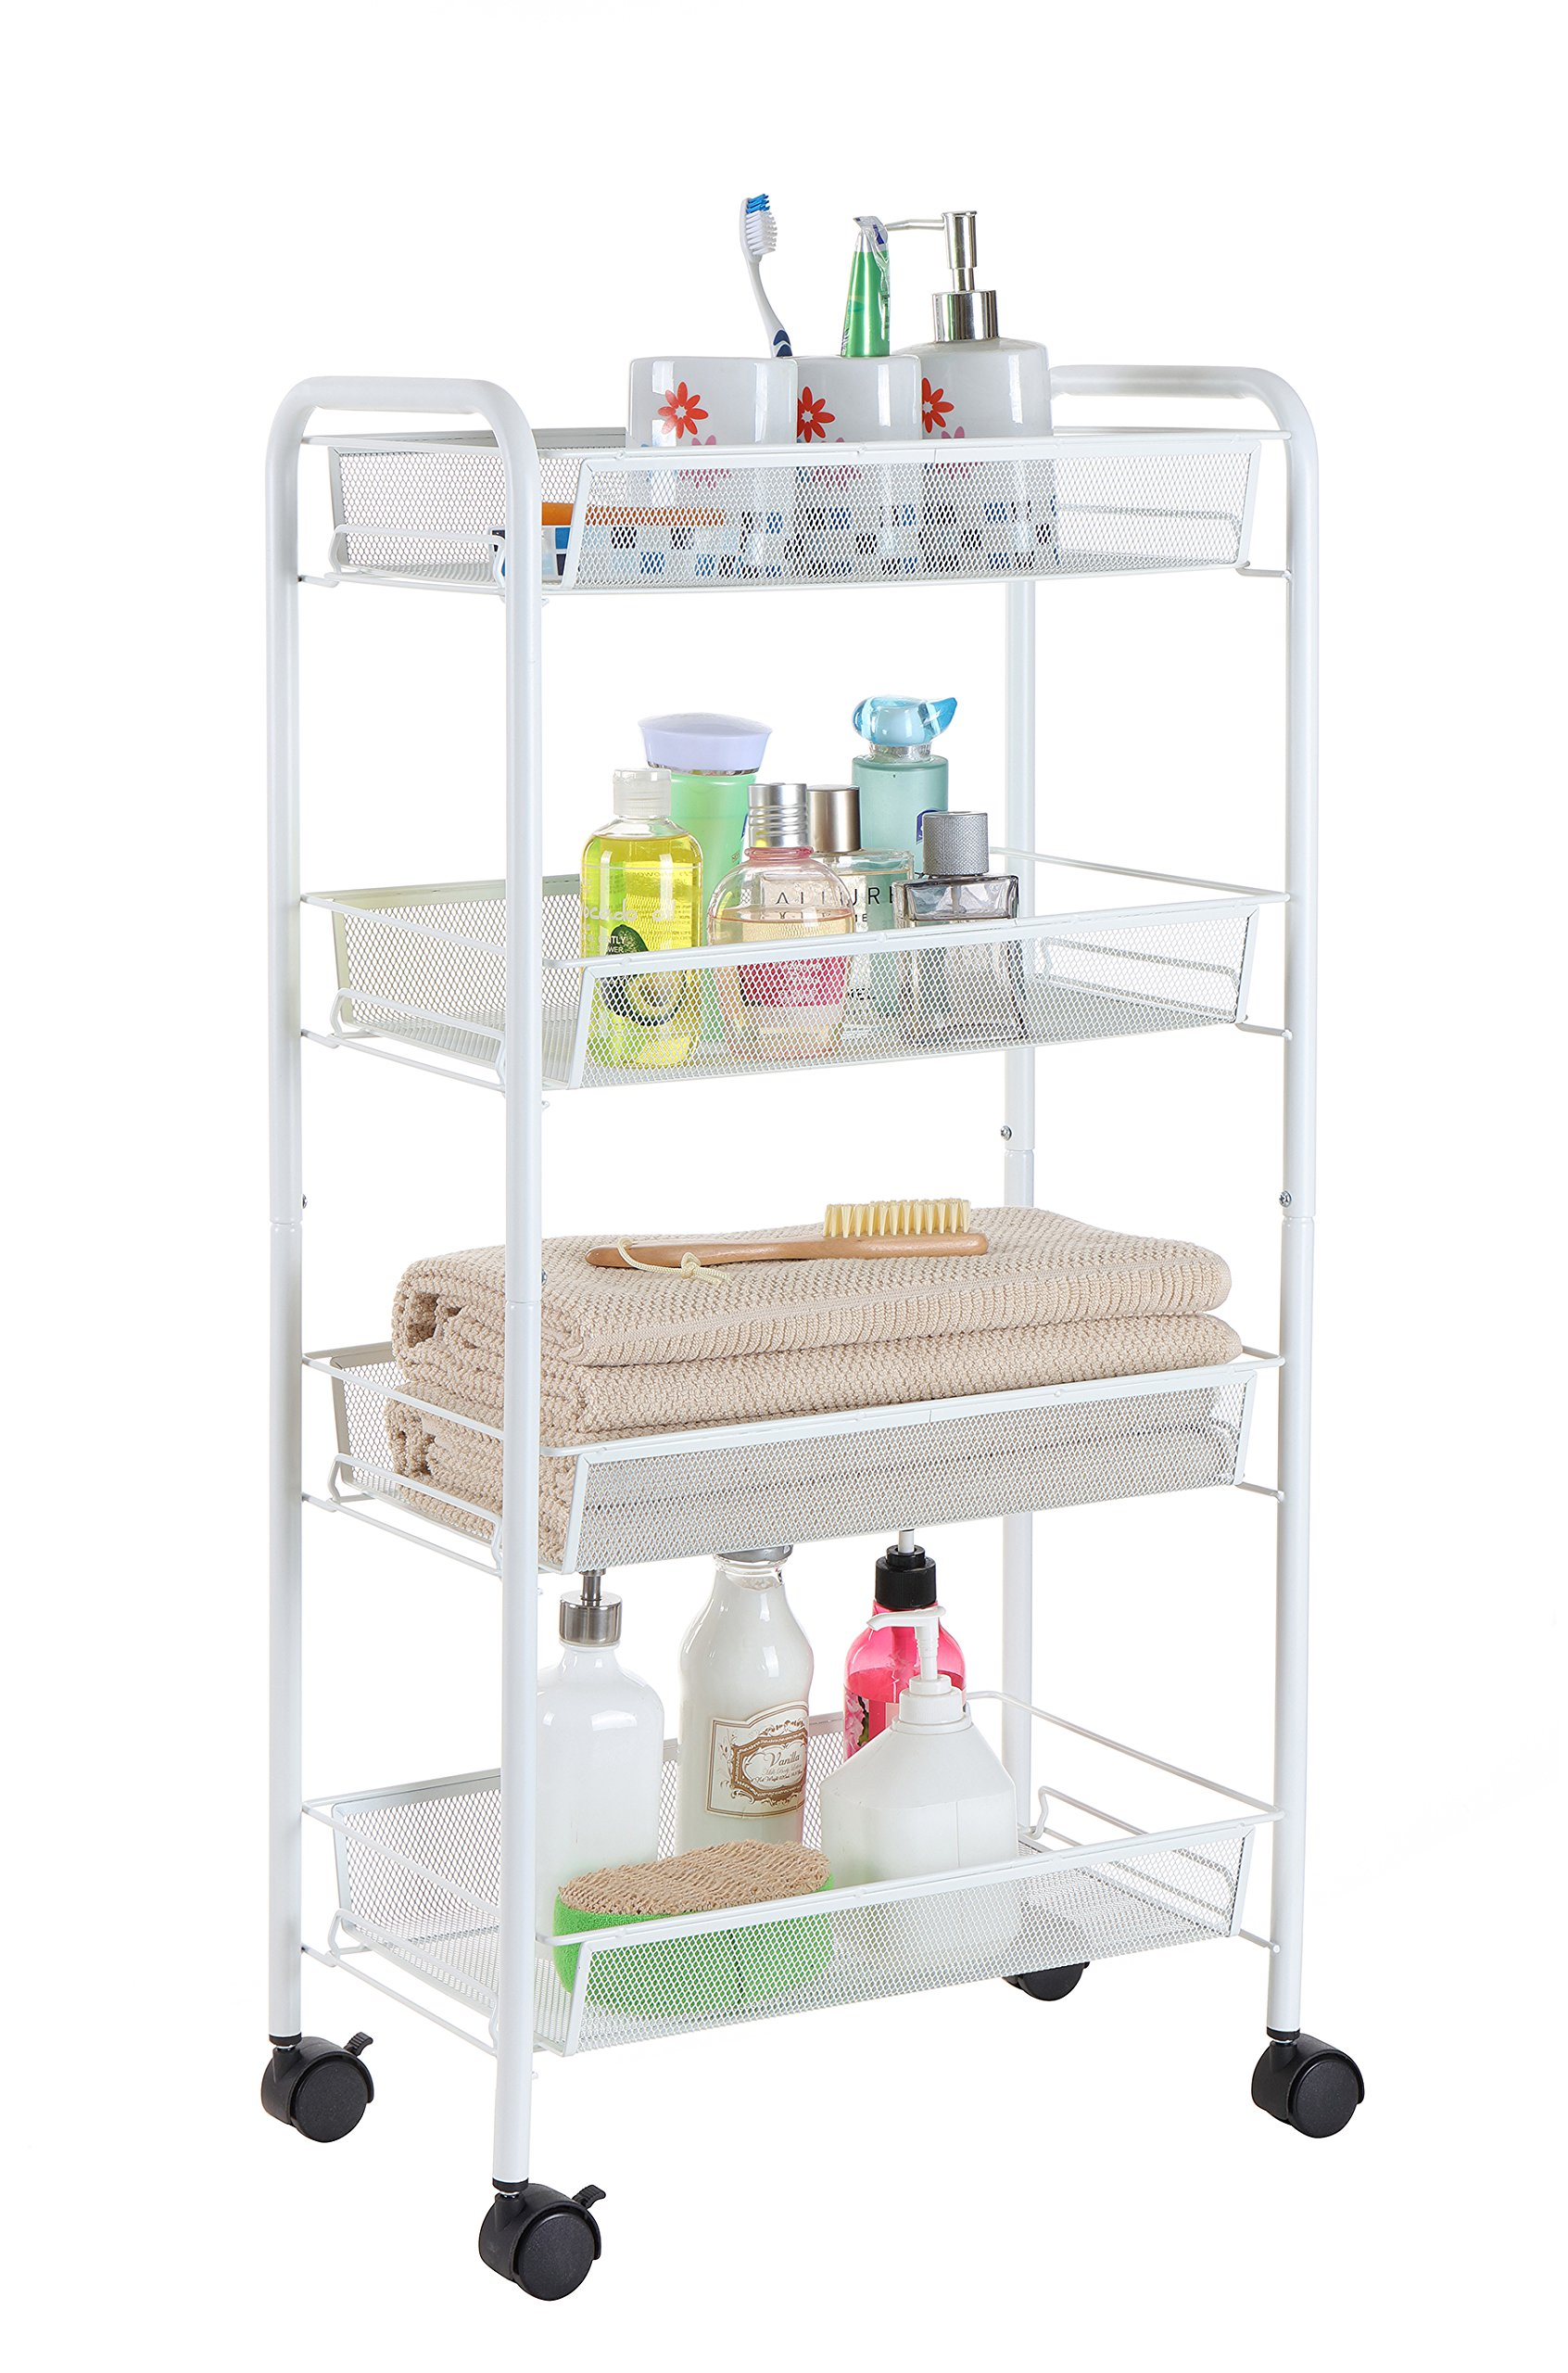 Finnhomy 4 Tier Metal Mesh Shelf Multi Purpose Rolling Utility Storage Cart with 3 Baskets, Laundry Cart, Space Saver, Perfect for Home Accessories, Laundry, Kitchen and Office Suppliers by Finnhomy